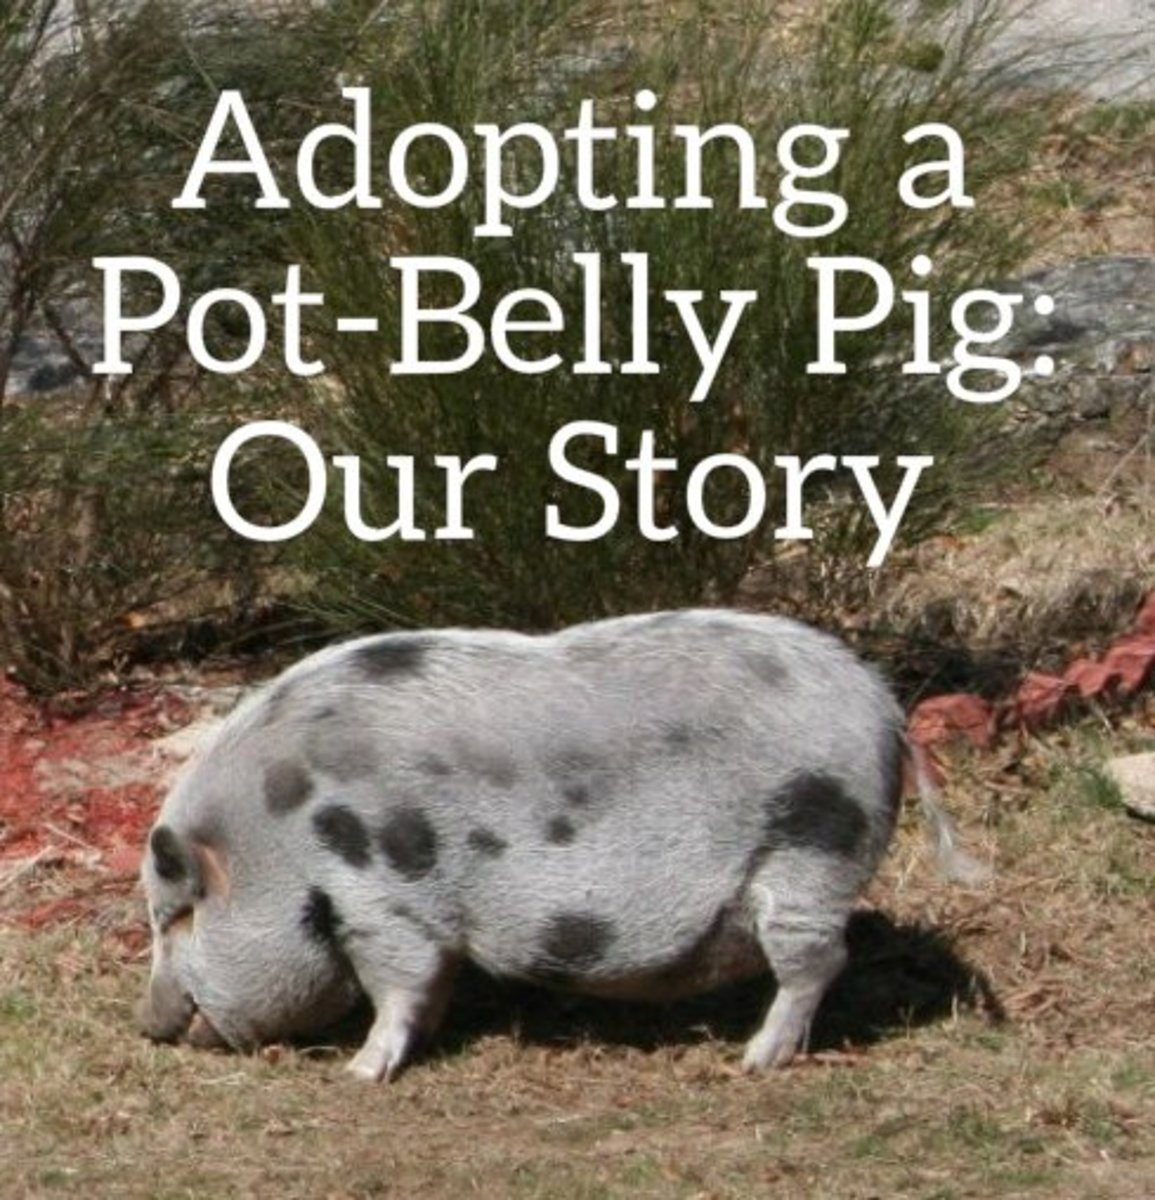 adopting-and-caring-for-a-domesticated-pot-belly-pig